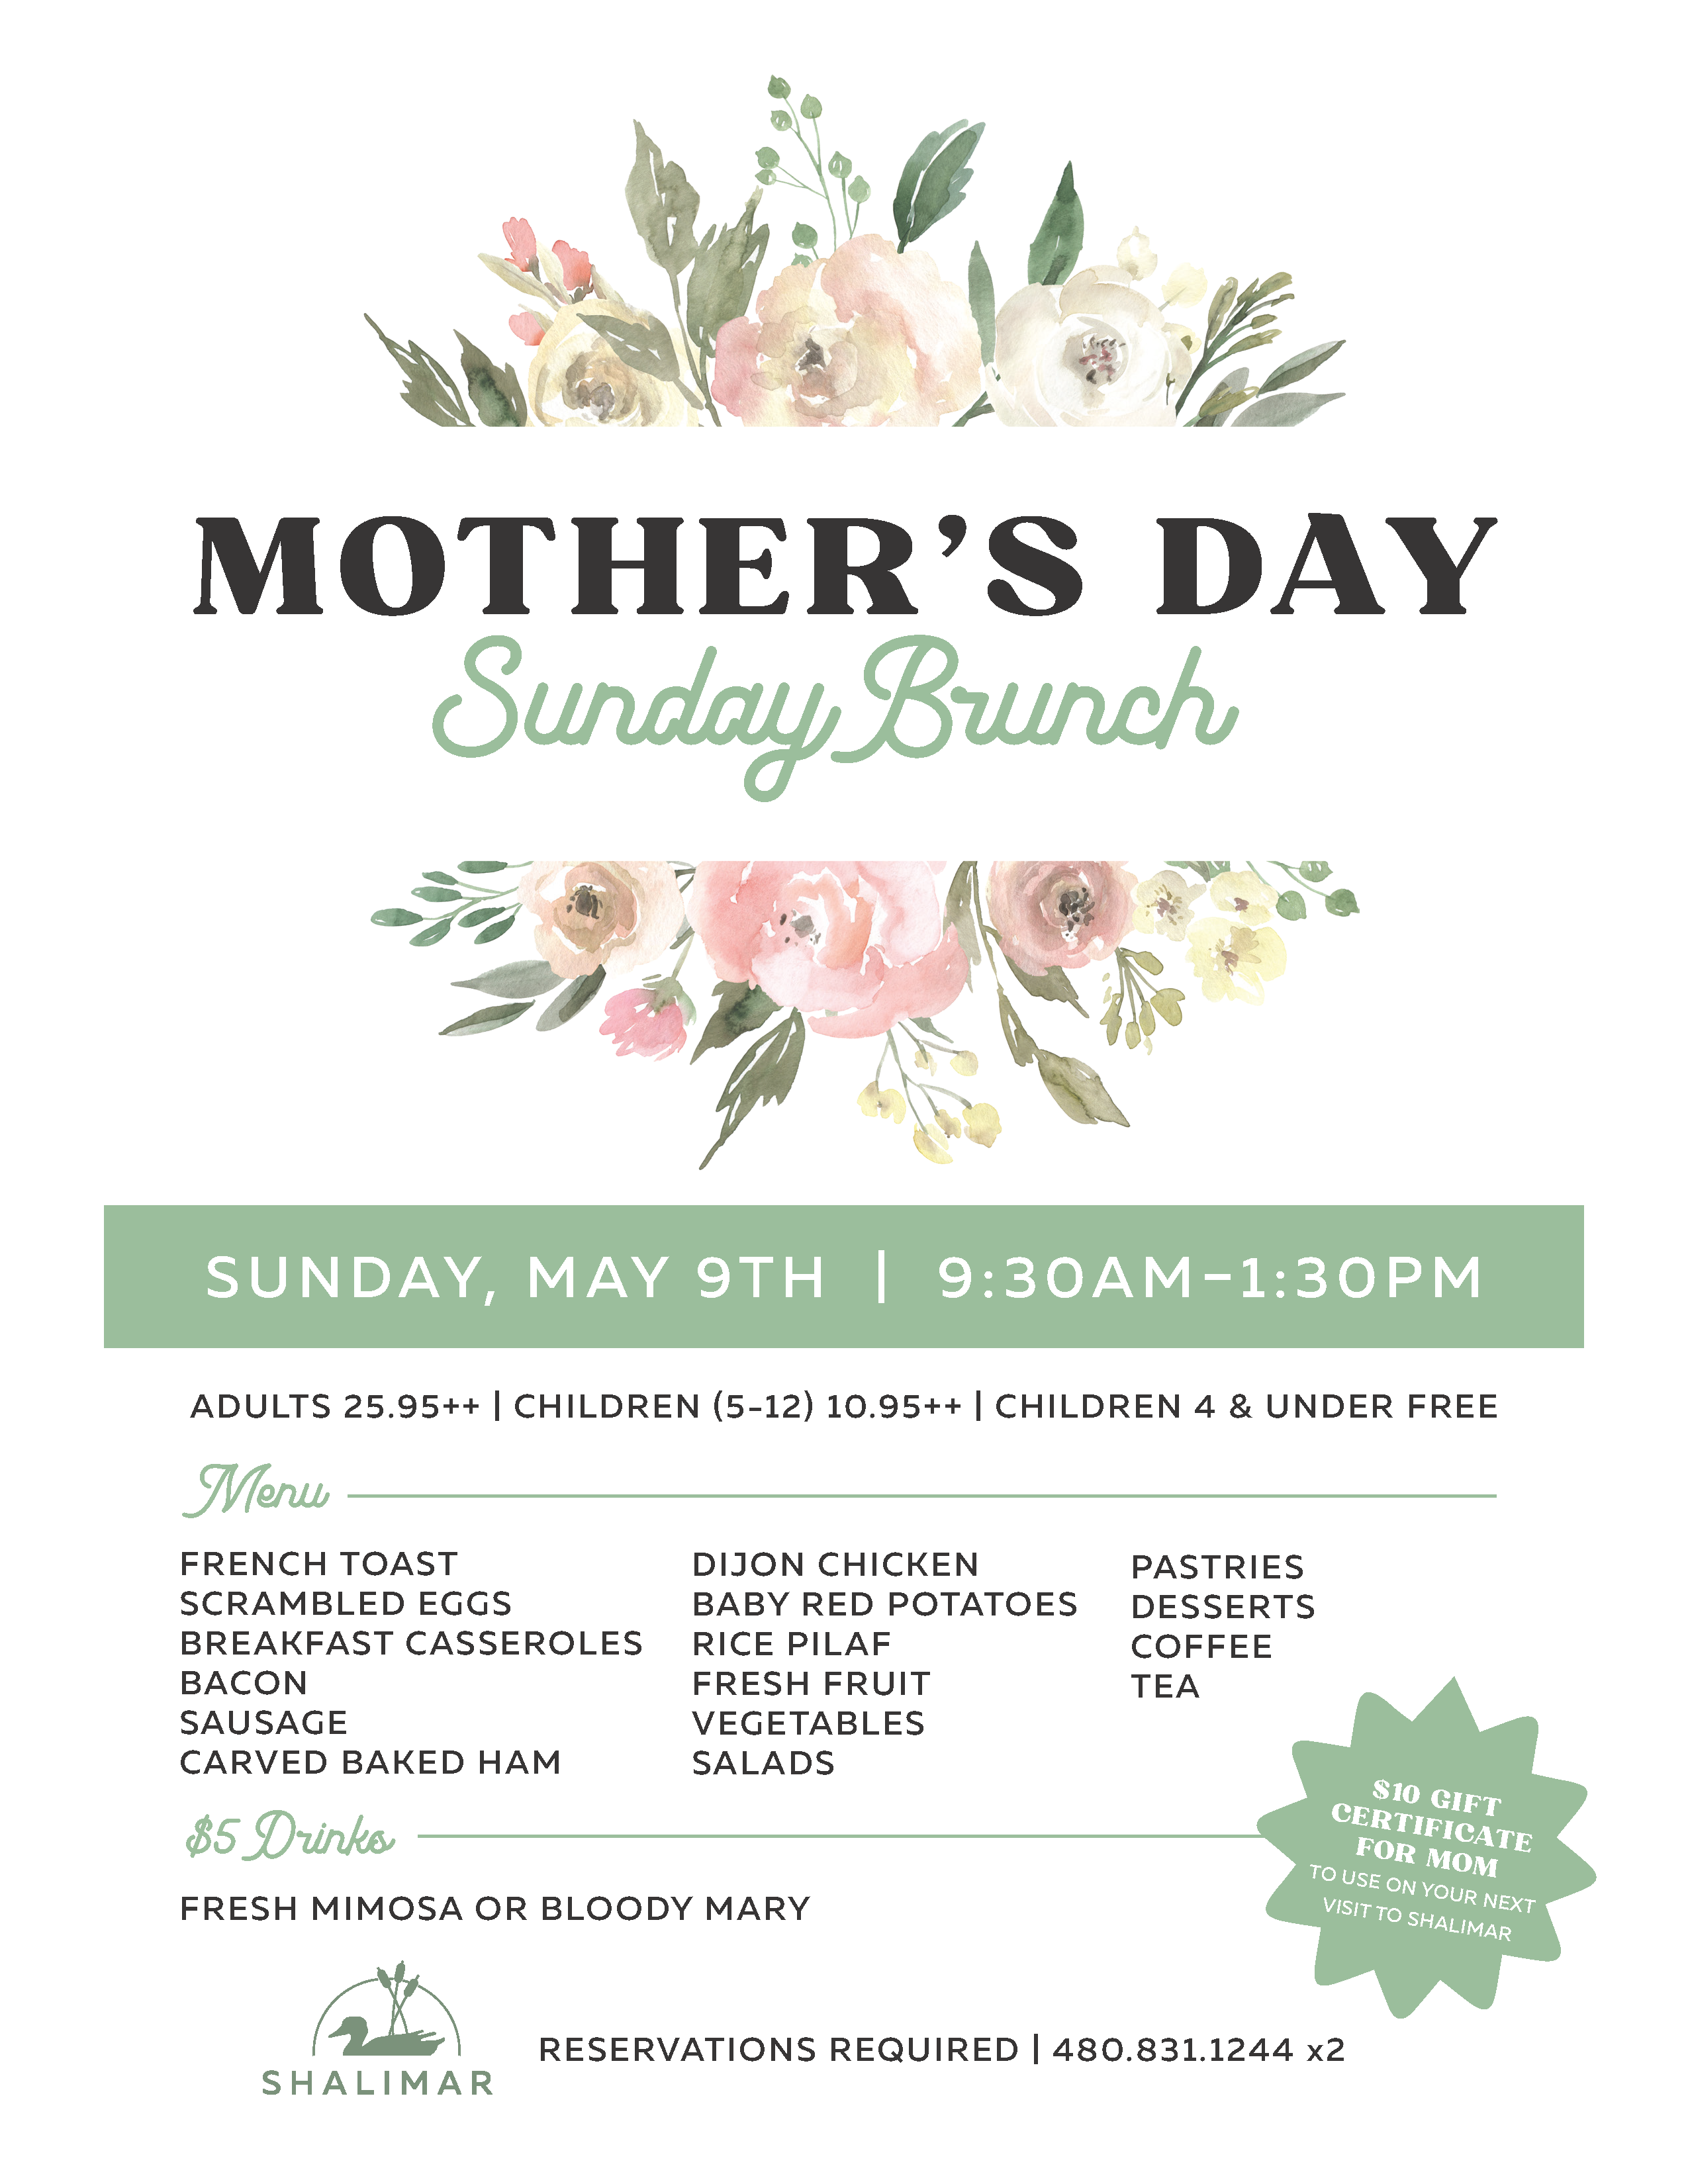 Mother's Day at Shalimar